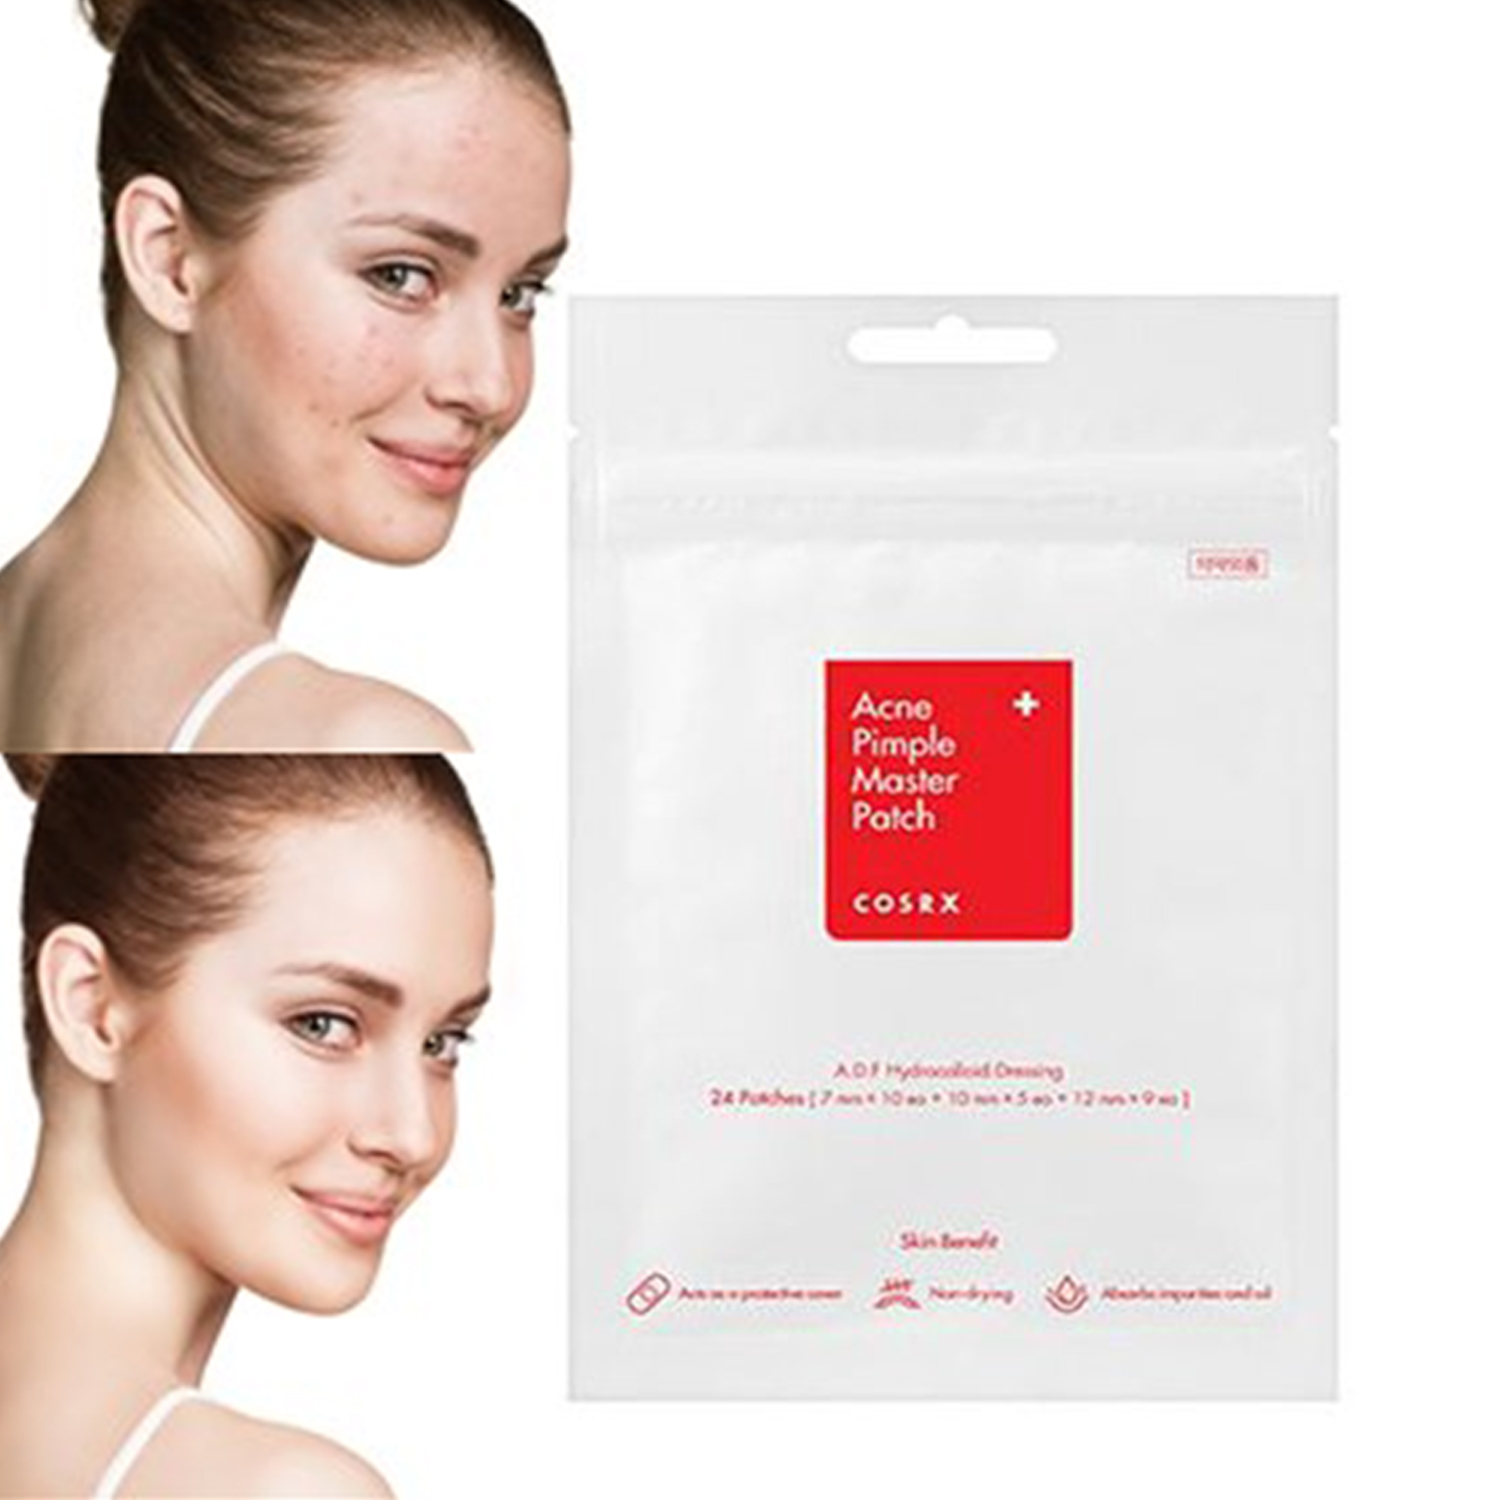 Korea Cosmetic Acne Pimple Master Patch 24 Patches Face Skin Care Anti Acne Pimple Treatment Blemish Acne Remover Drop Ship